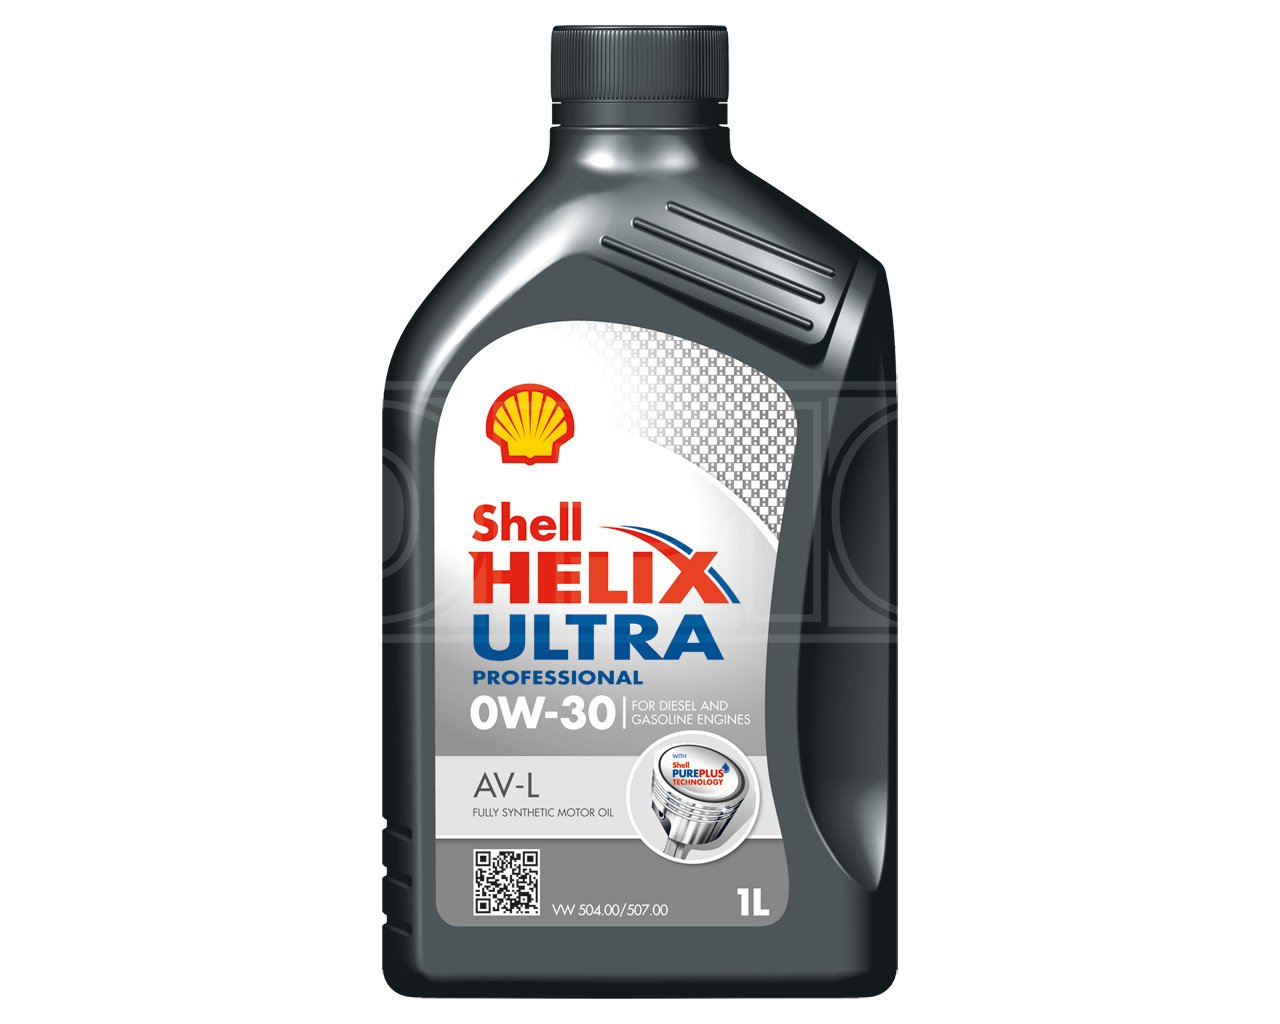 Shell Helix Ultra Professional AV-L 0w-30 Pure Plus Fully Synthetic Engine Oil - 550041828 - 1 Litres